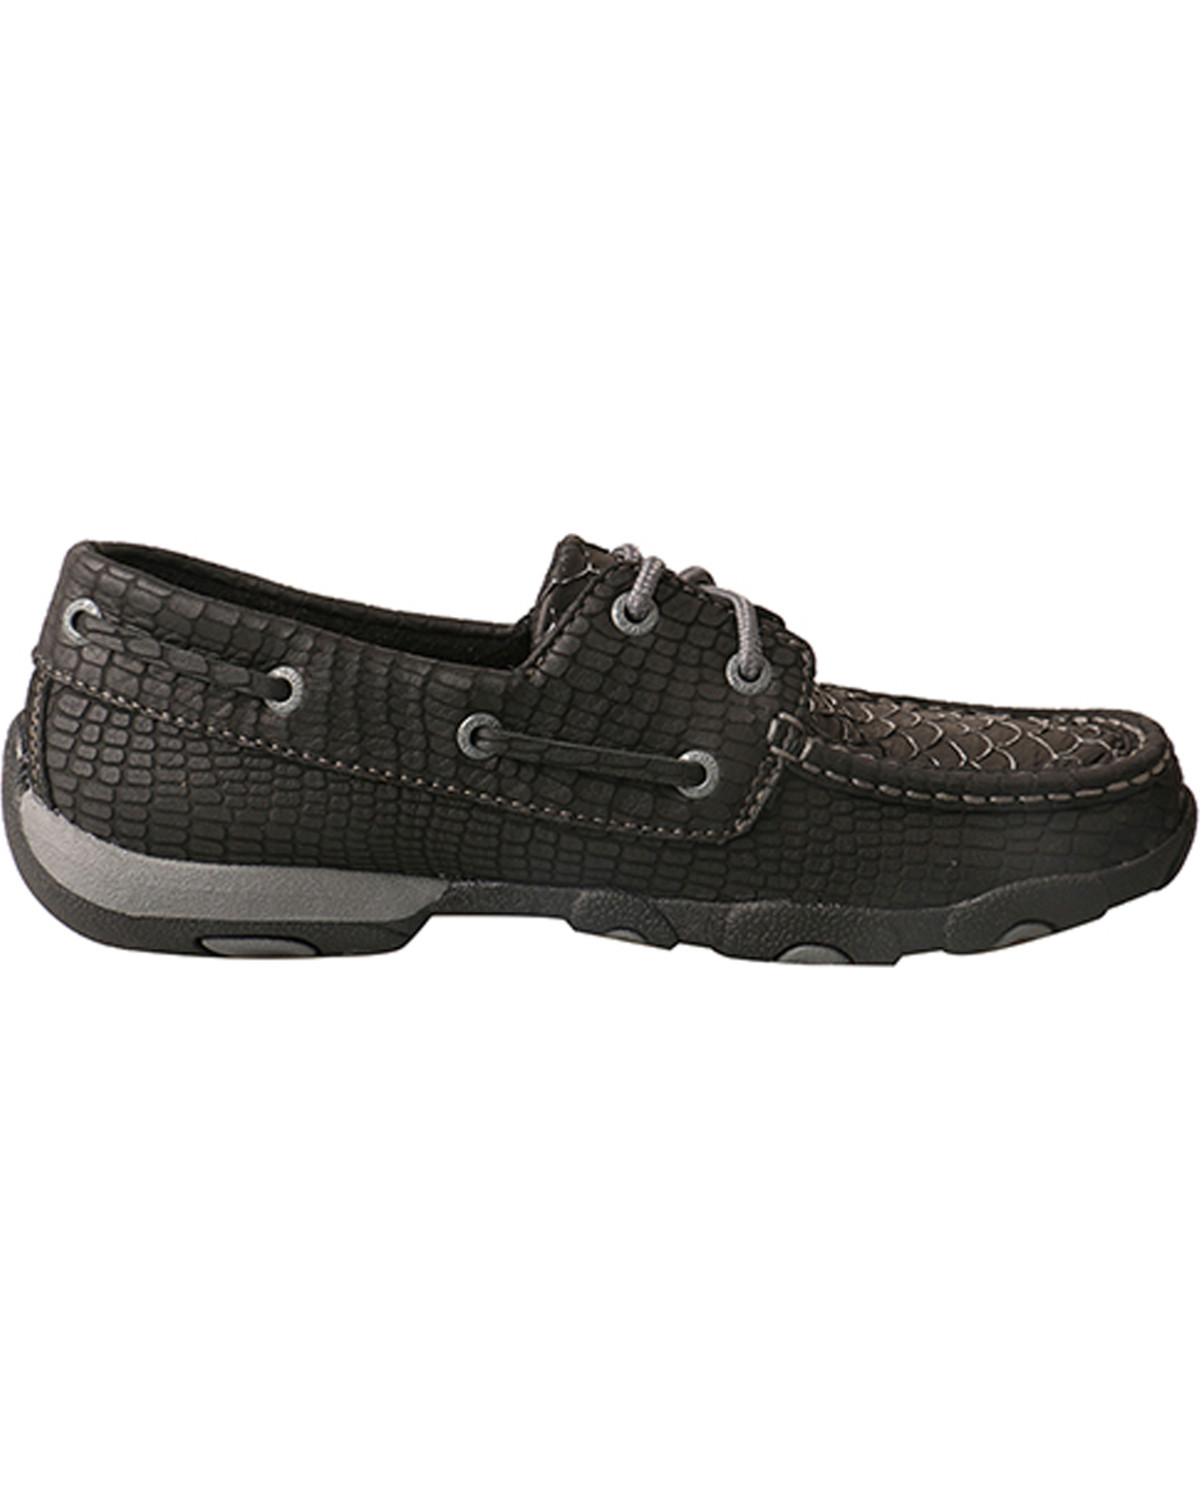 6742c532498 Twisted X Women s Black Fish Grey Driving Mocs - Moc Toe